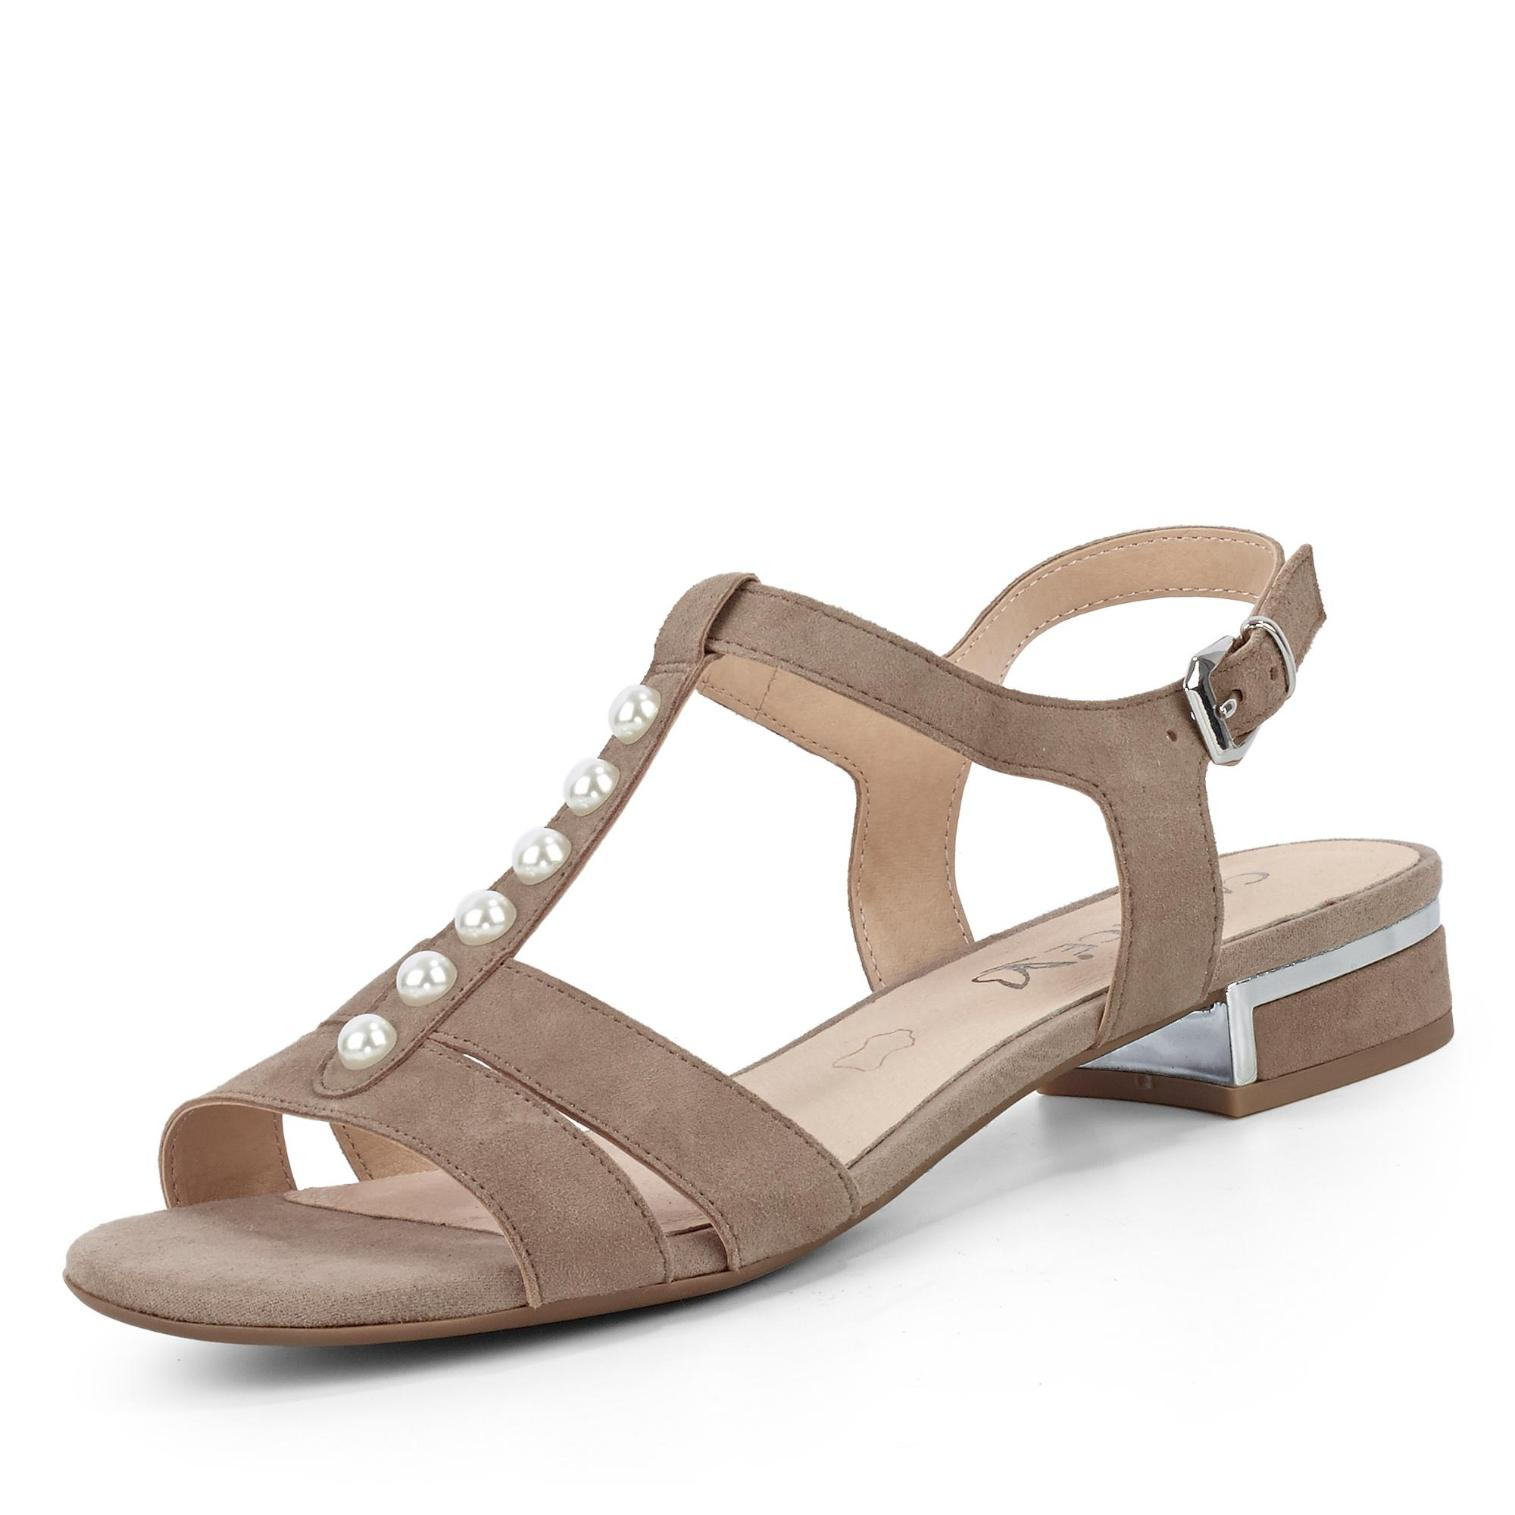 Caprice Sandale in Farbe Farbe Farbe taupe um 17% reduziert online kaufen a46054